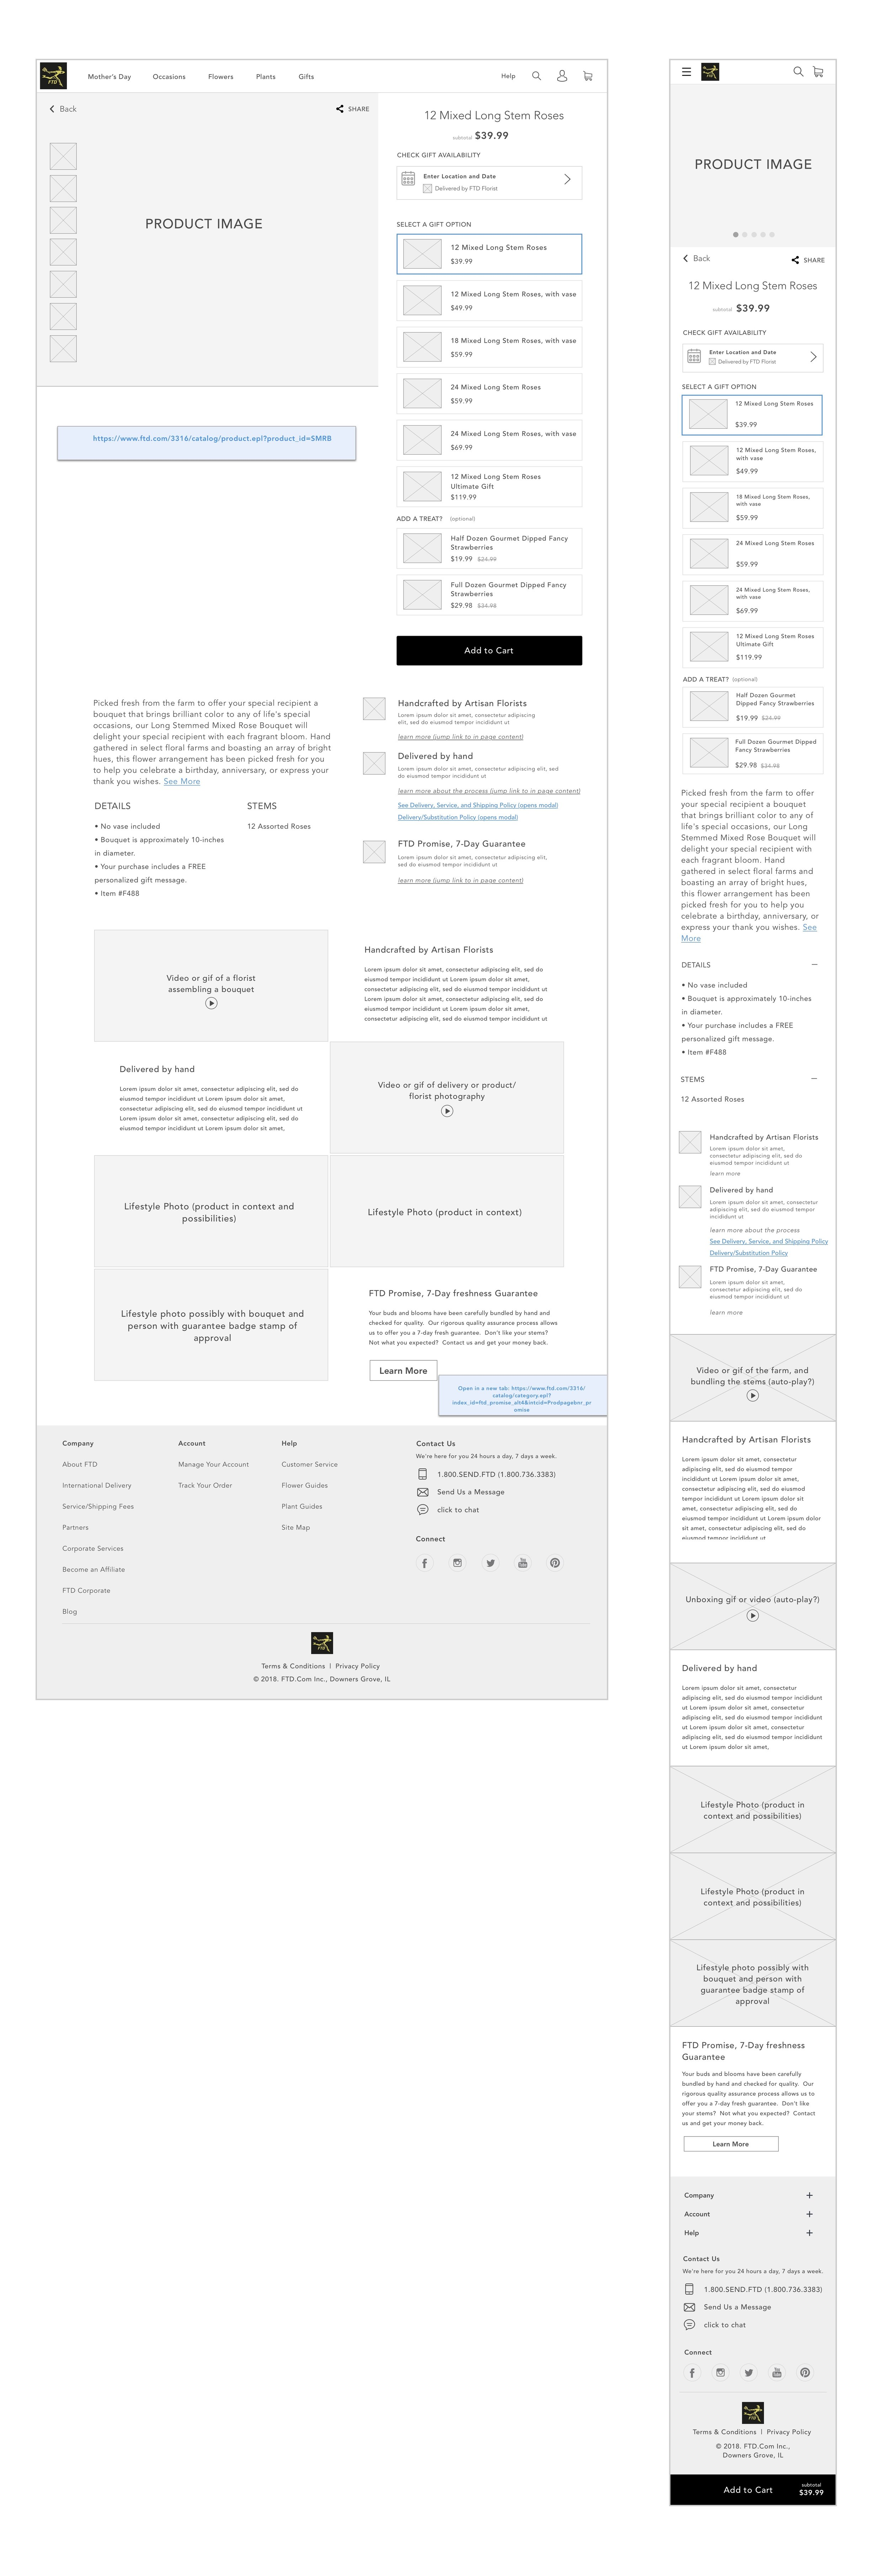 FTD Product Page Wireframe